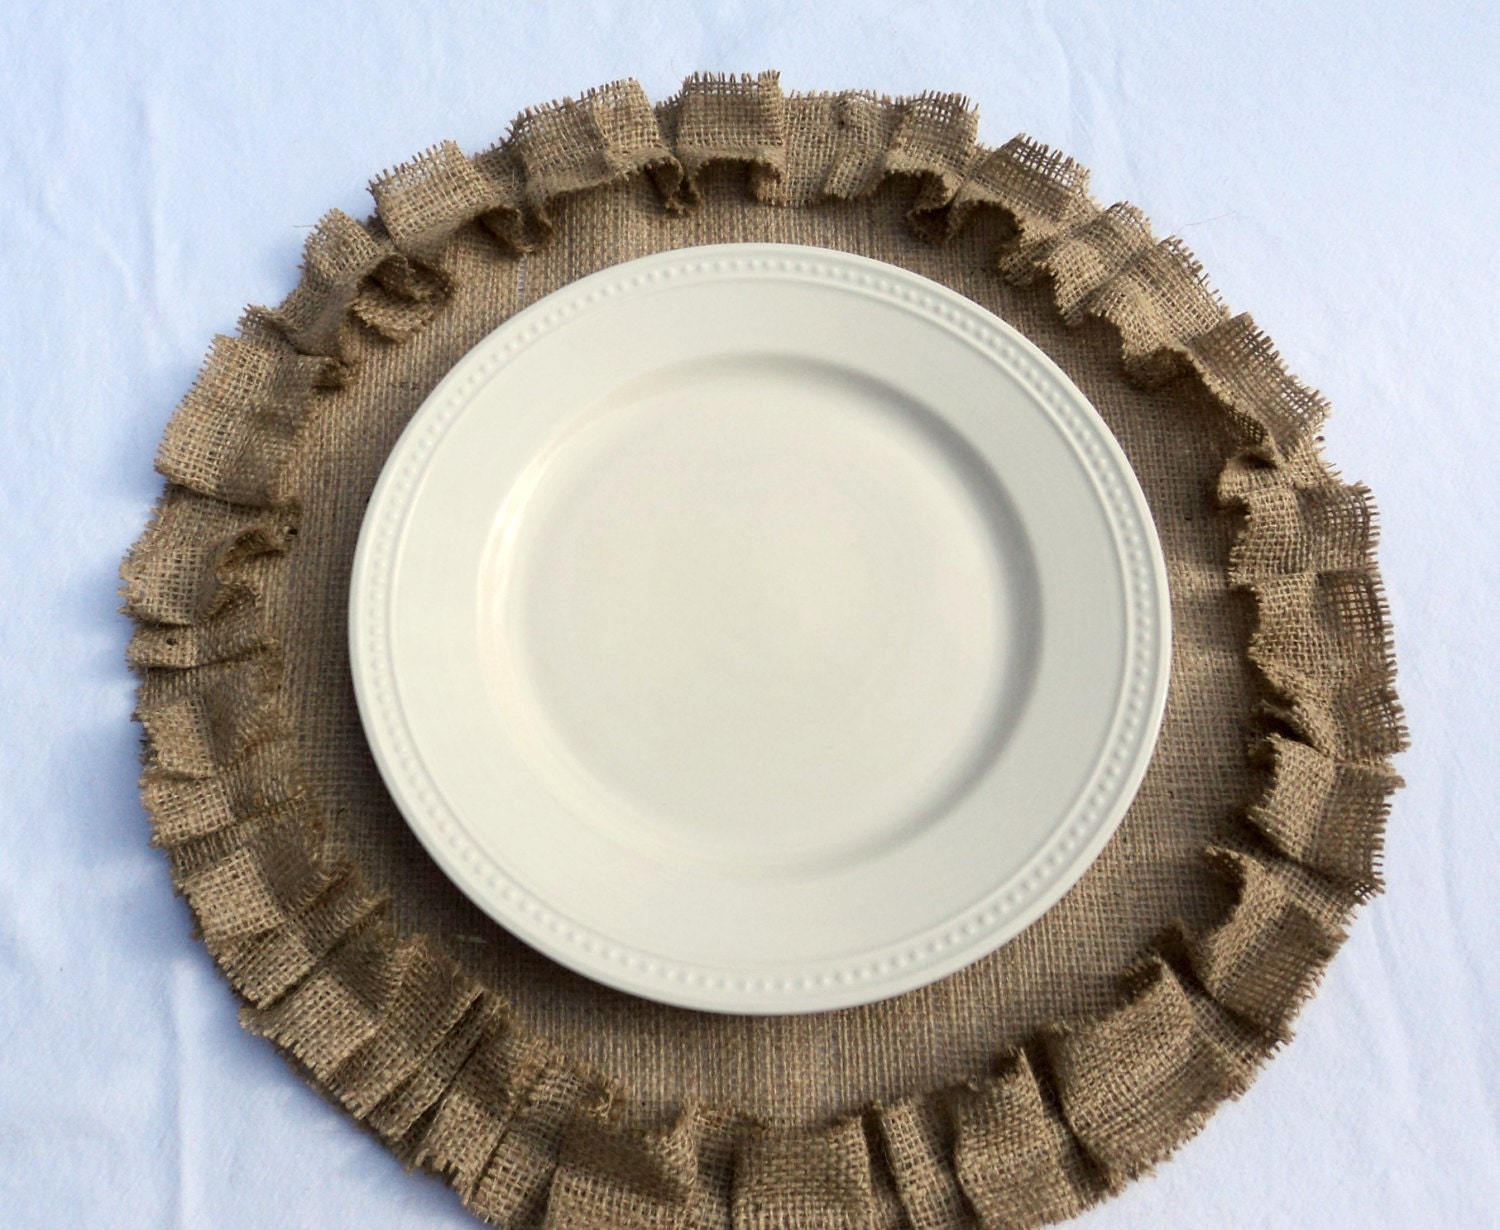 Burlap Placemats Round With Ruffles Rustic